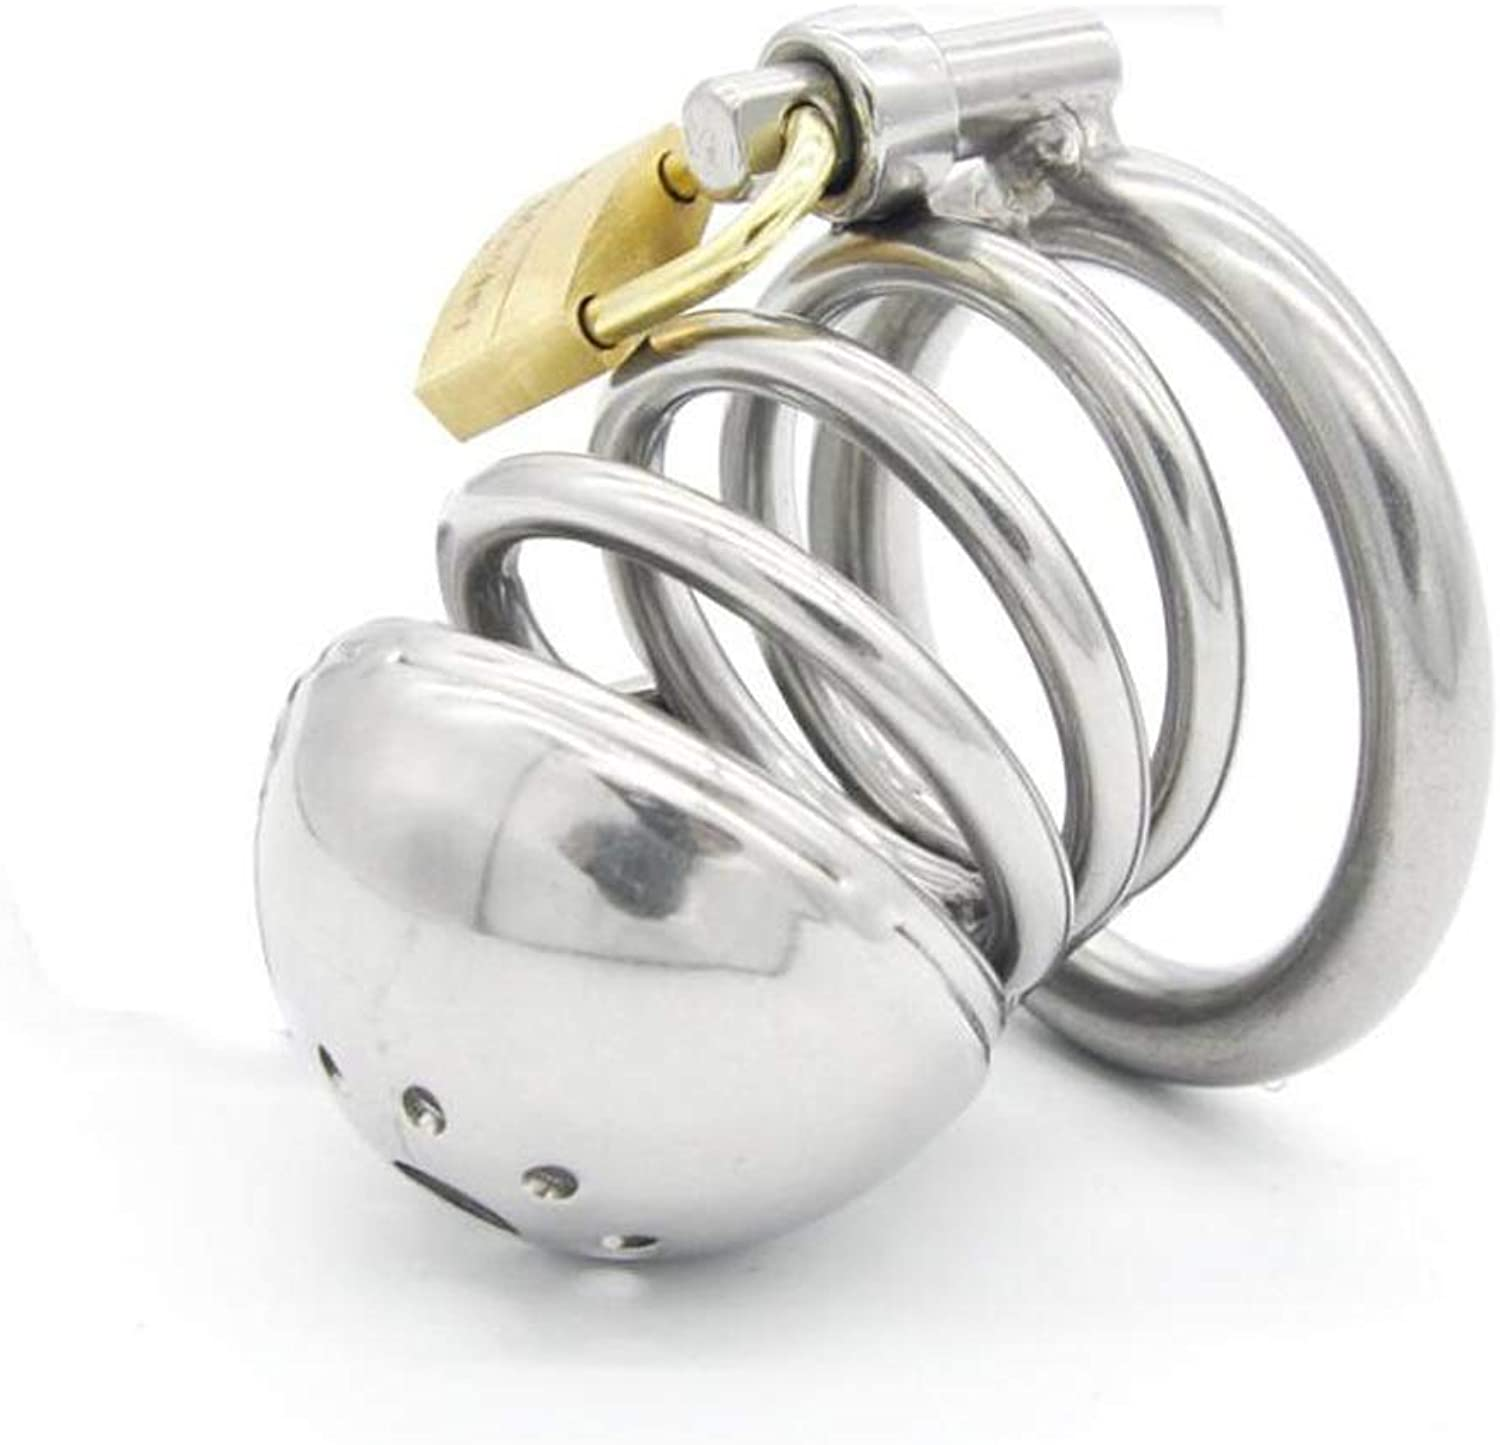 CJH Male Chastity Lock Stainless Steel Chastity Cage Penile Lock